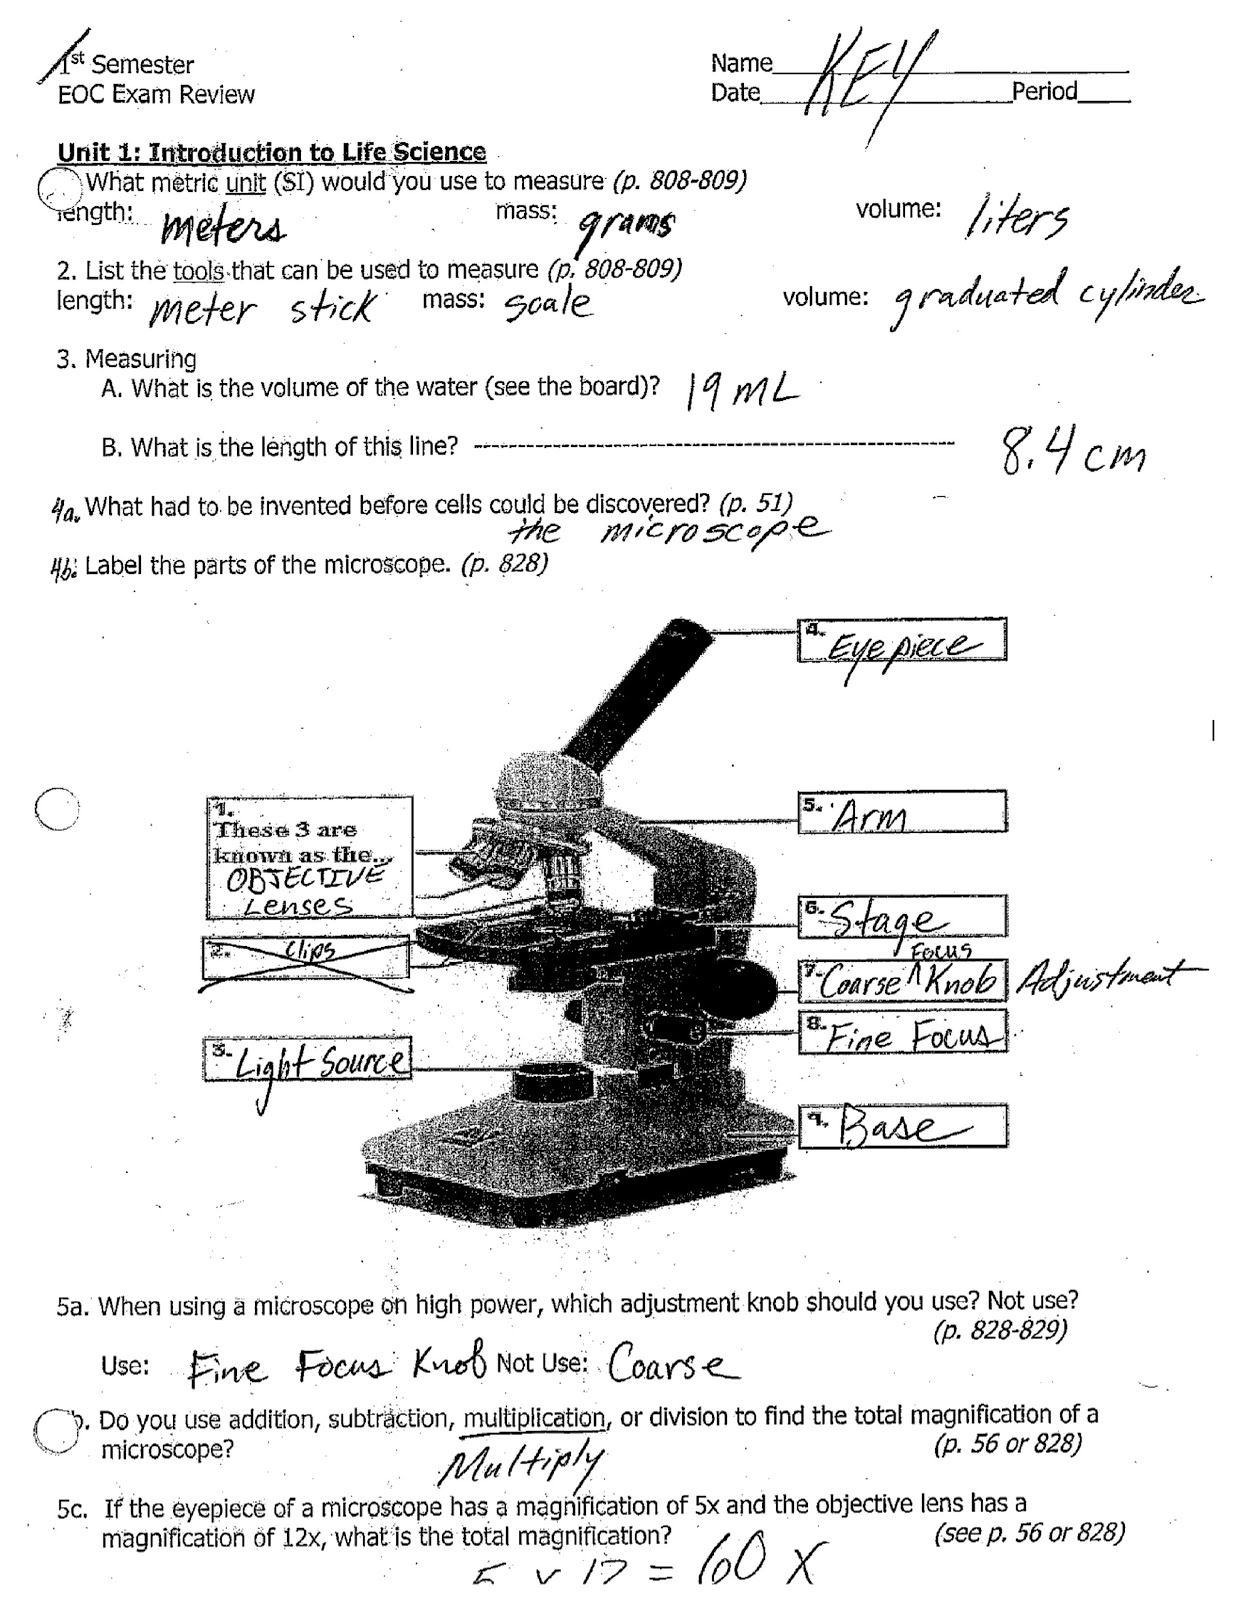 7th Grade Life Science Eoc Review Answers Pages 1 3 Click On Image To Enlarge